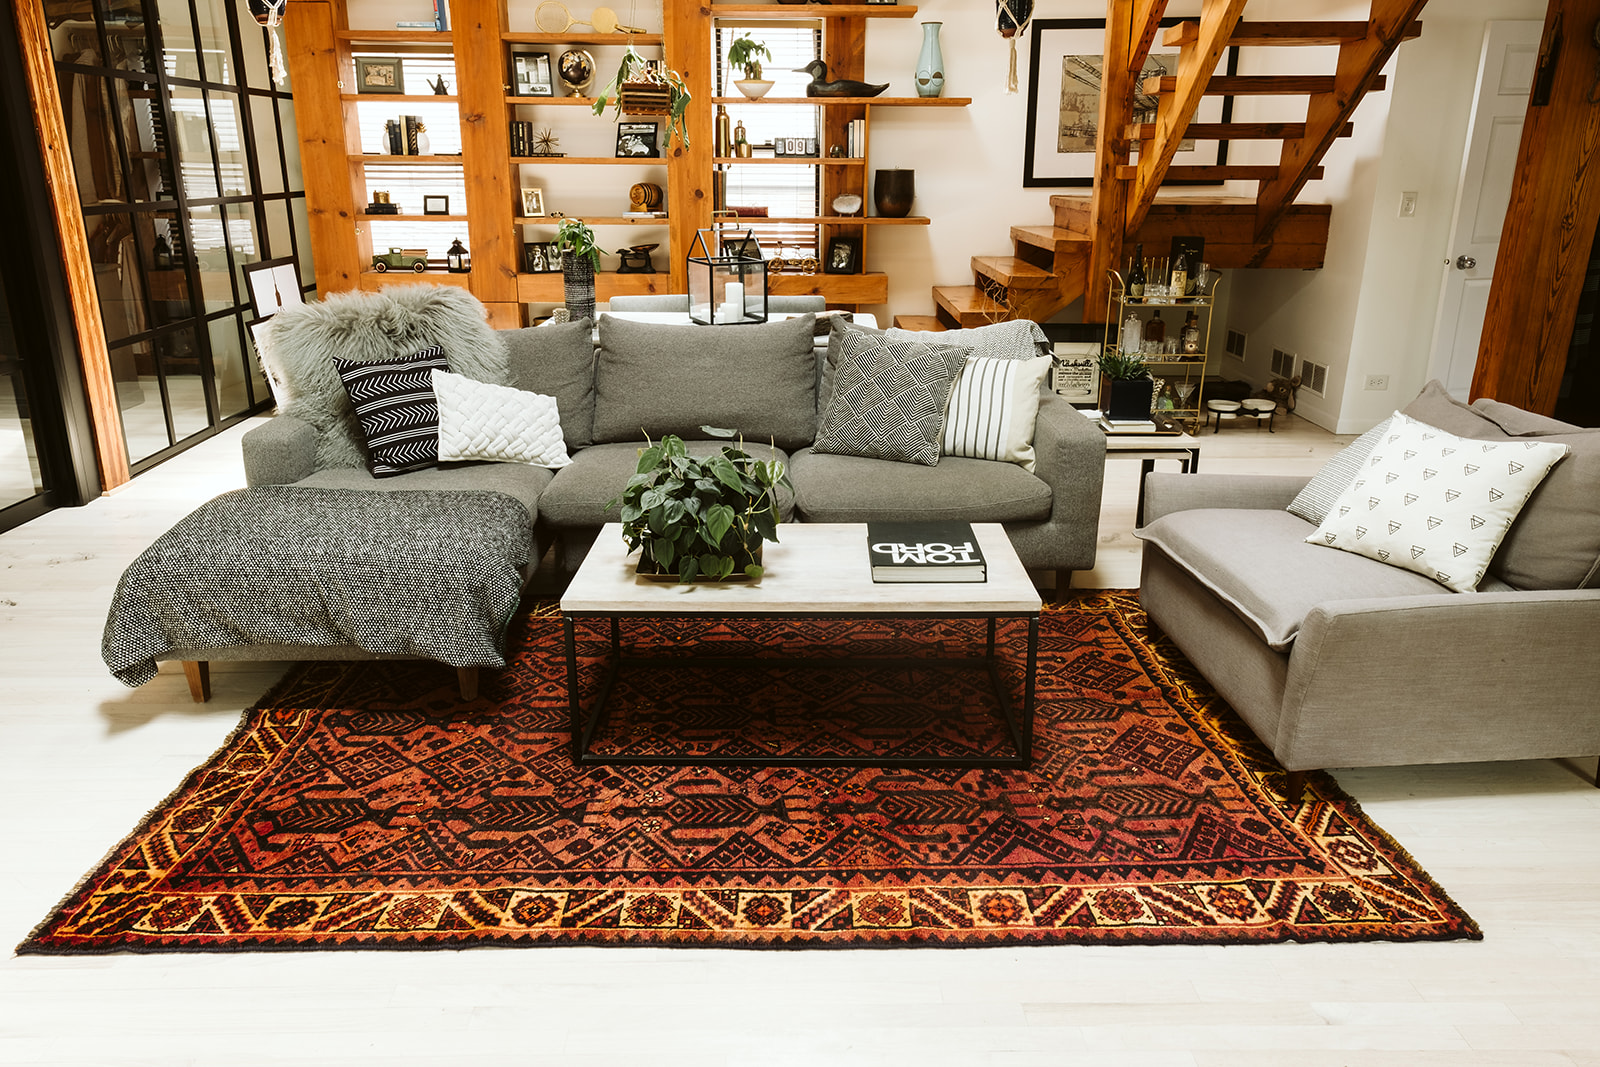 living room with an orange and yellow rug and a grey couch